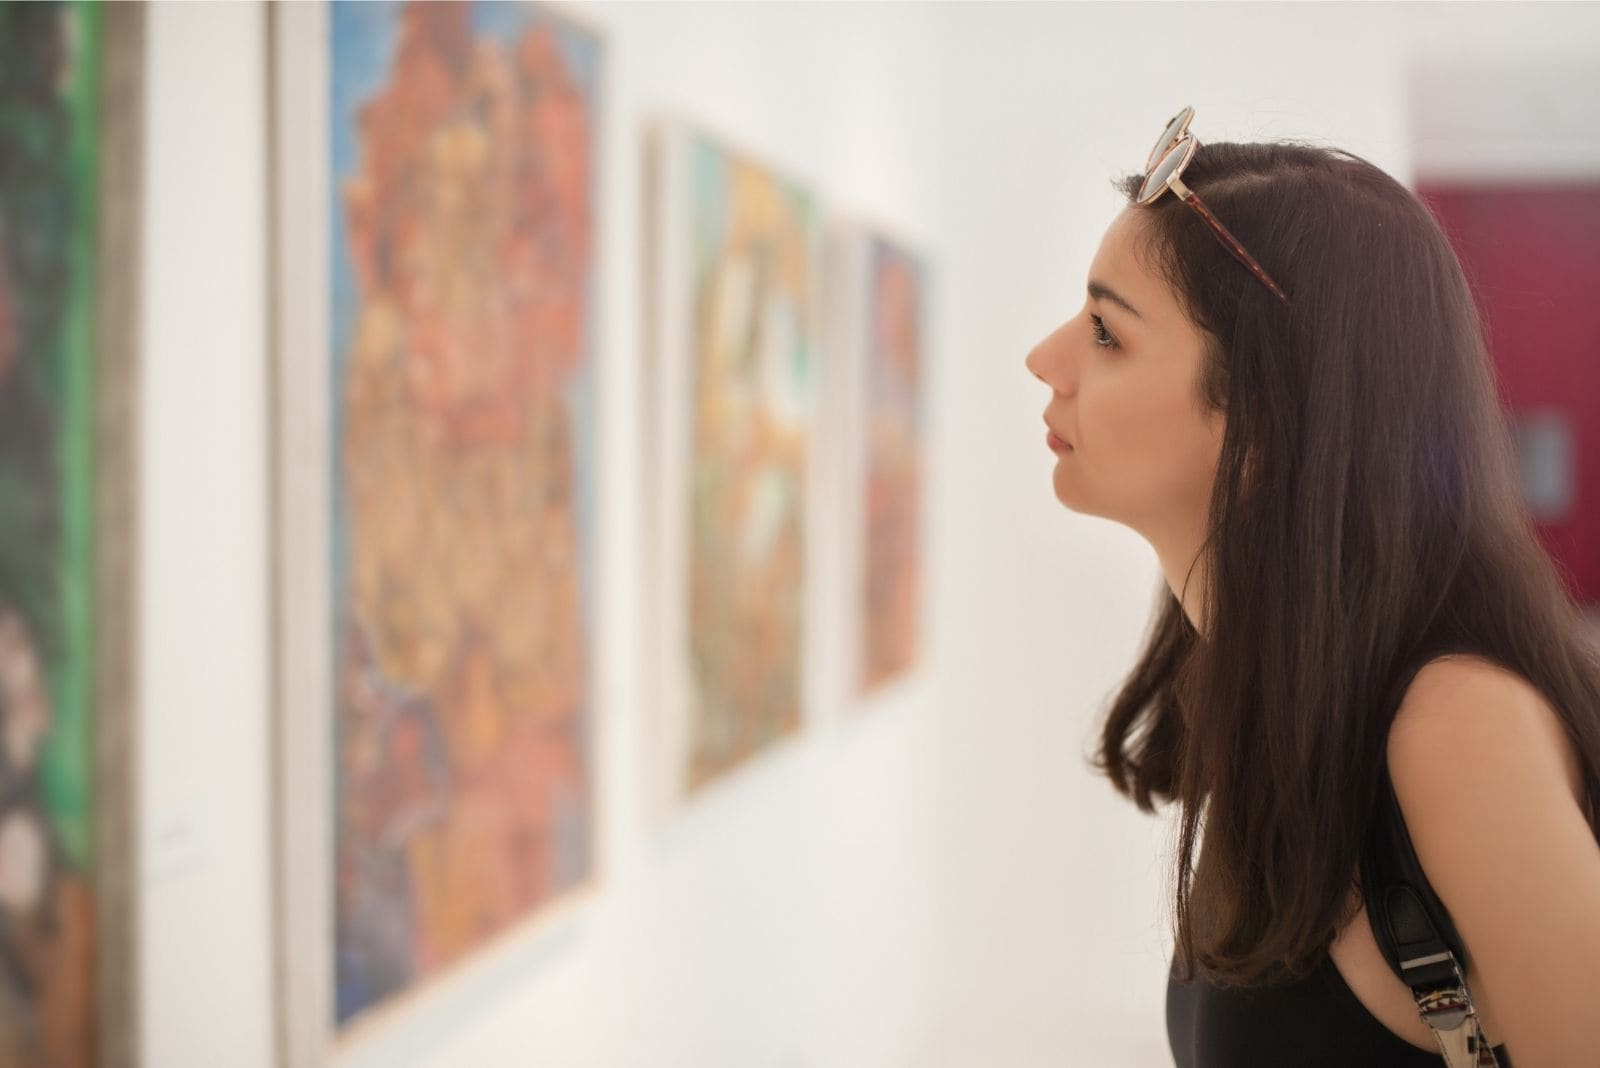 woman visiting an art gallery with arts on the wall